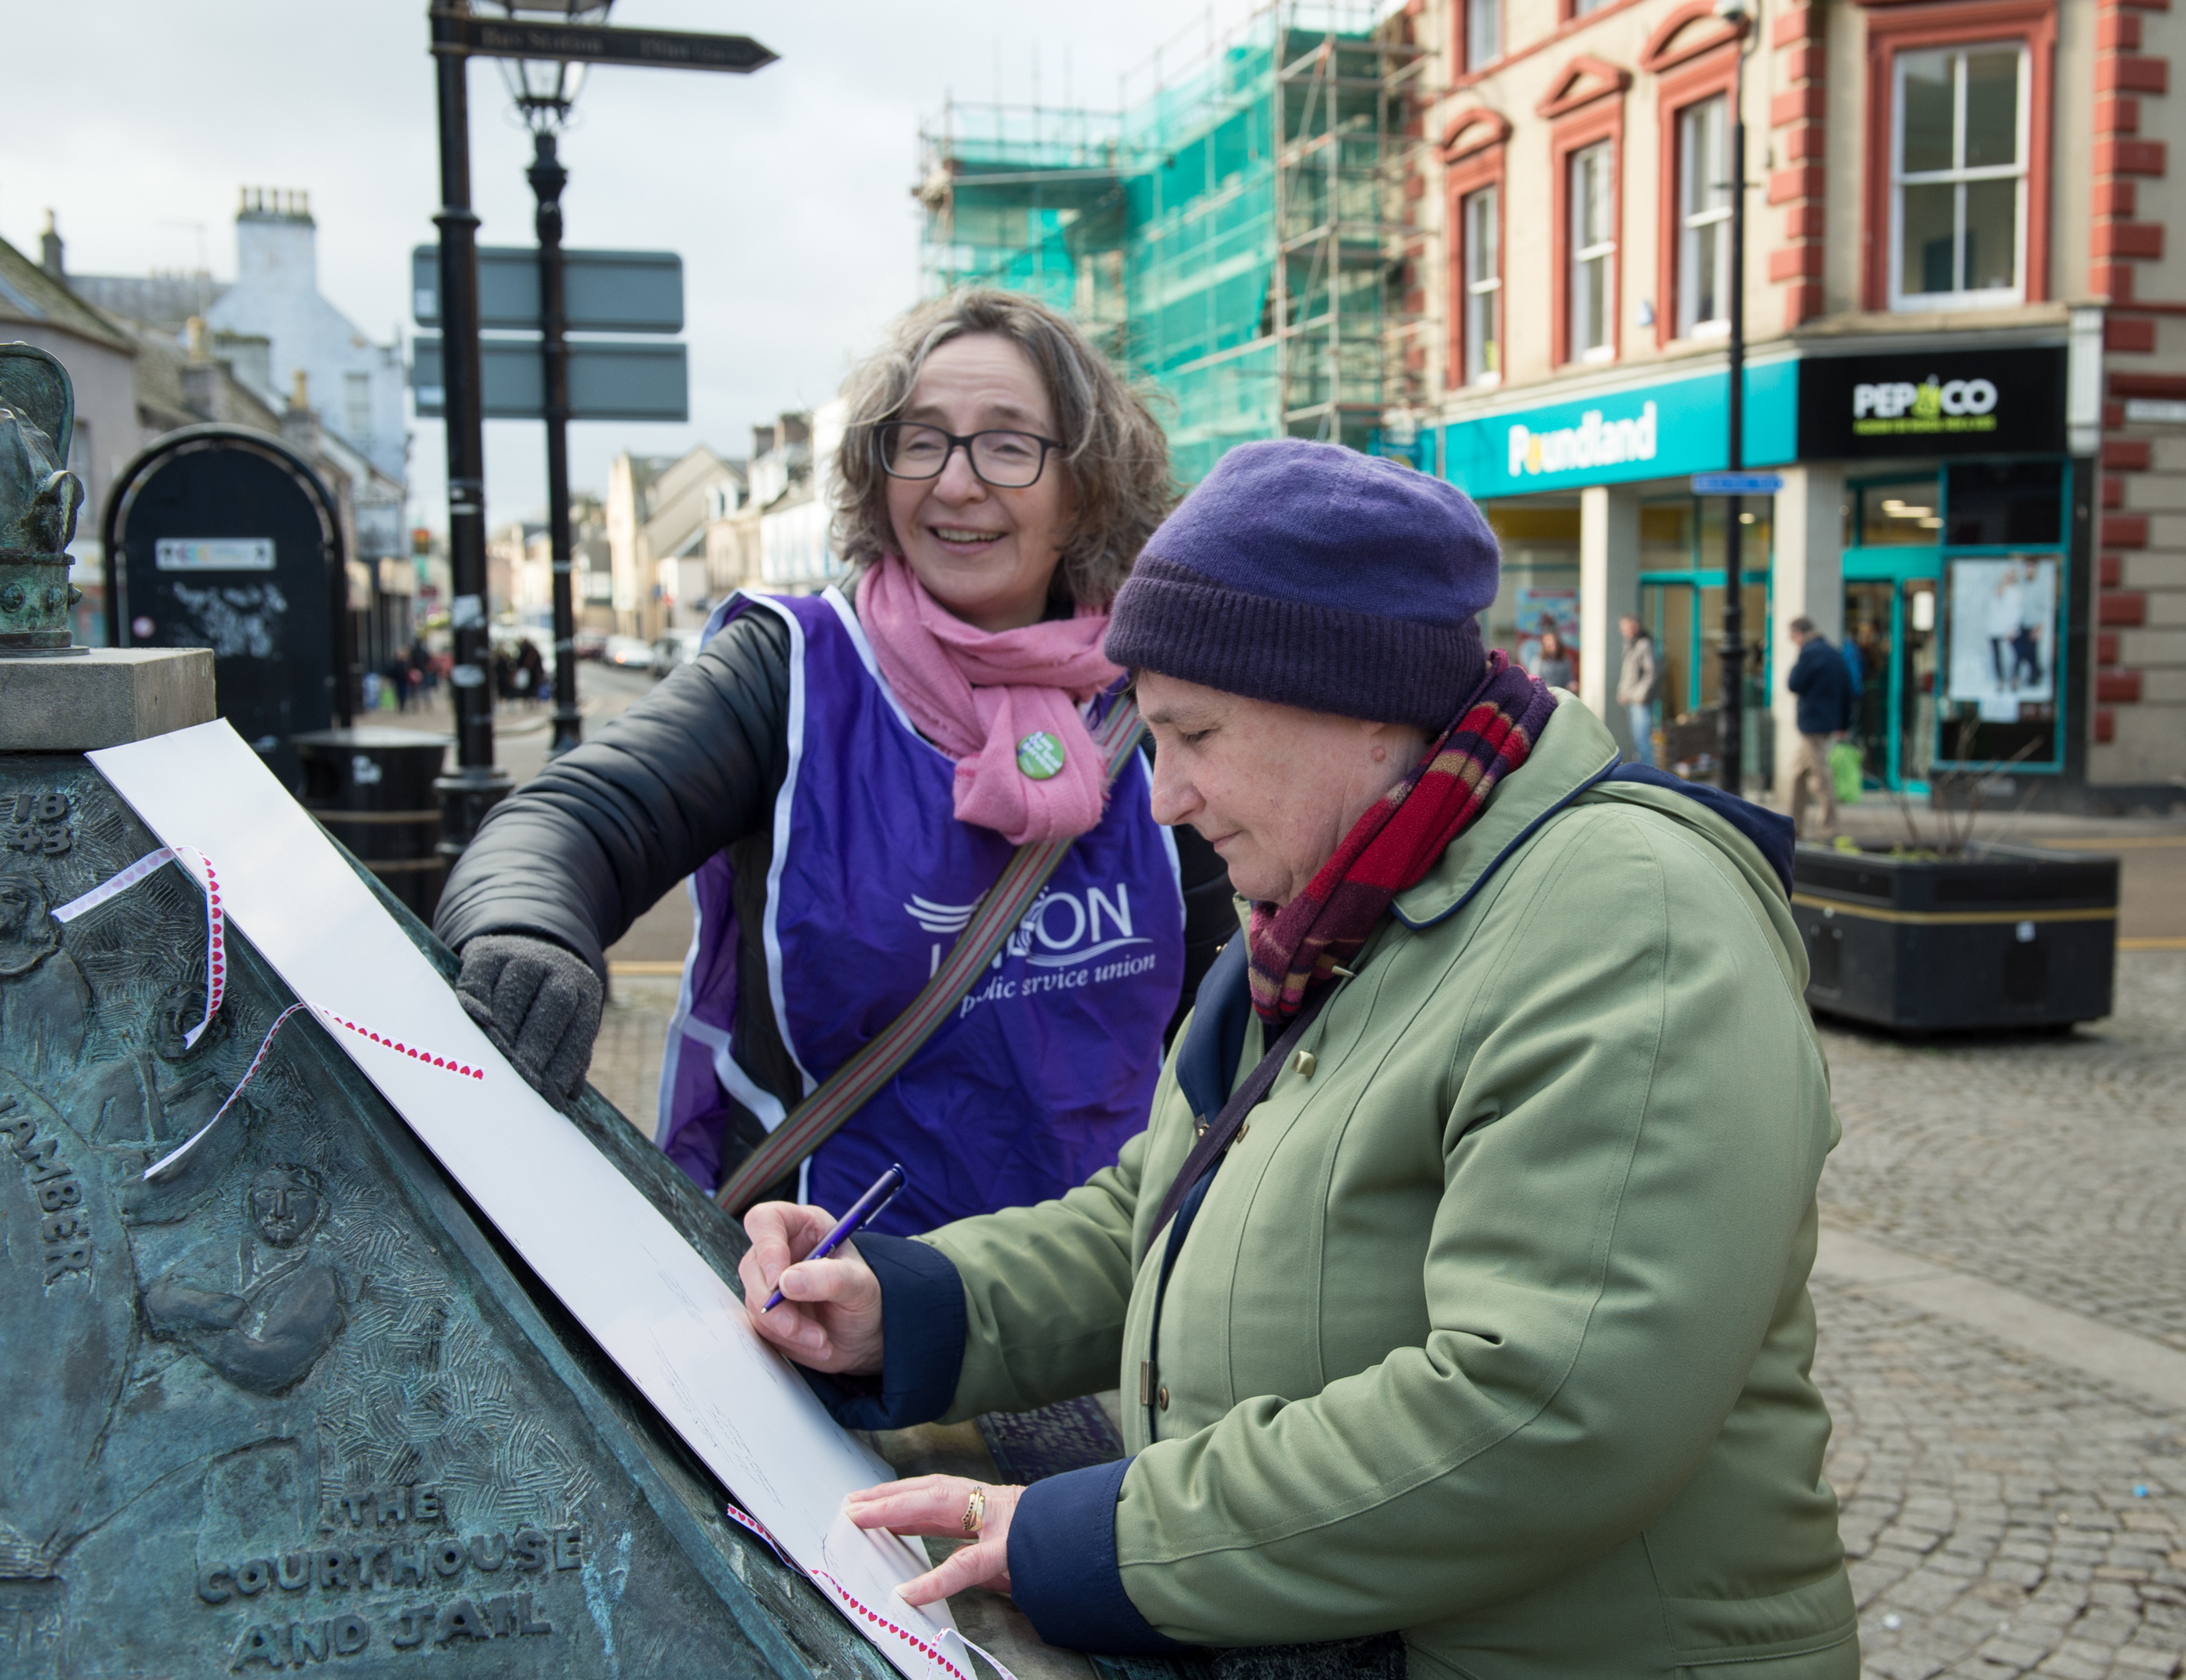 School librarian Angela Walker signs the Valentine's Day card with Unison member Eilidh Macleod.